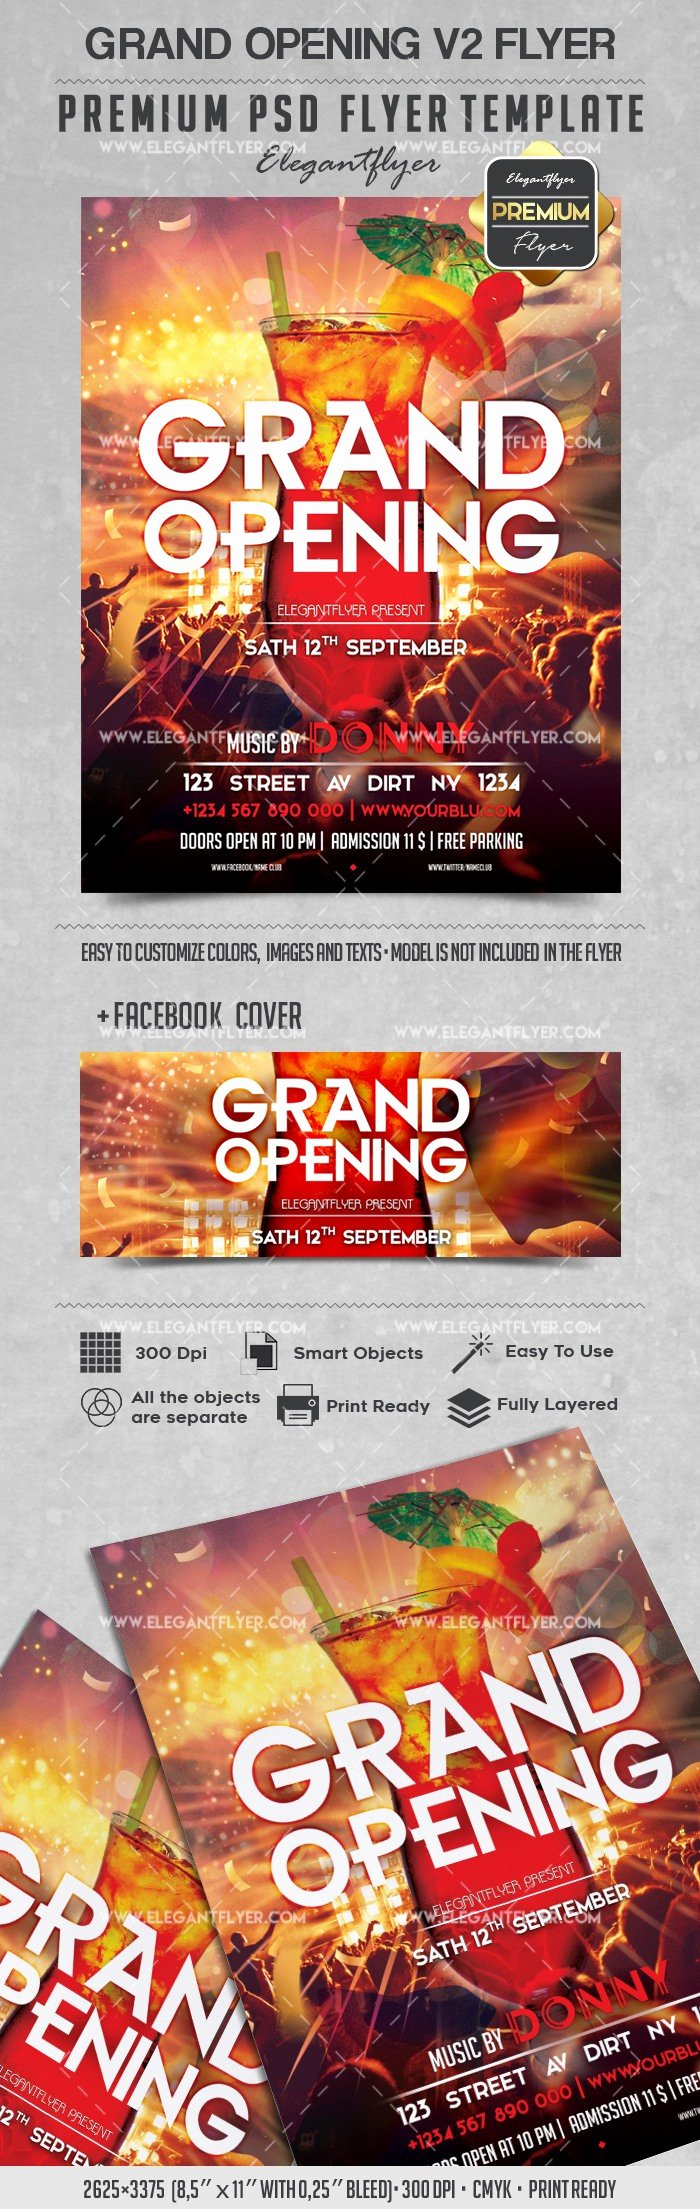 Grand Opening Flyer Template Free Awesome Grand Opening V2 – Flyer Psd Template – by Elegantflyer